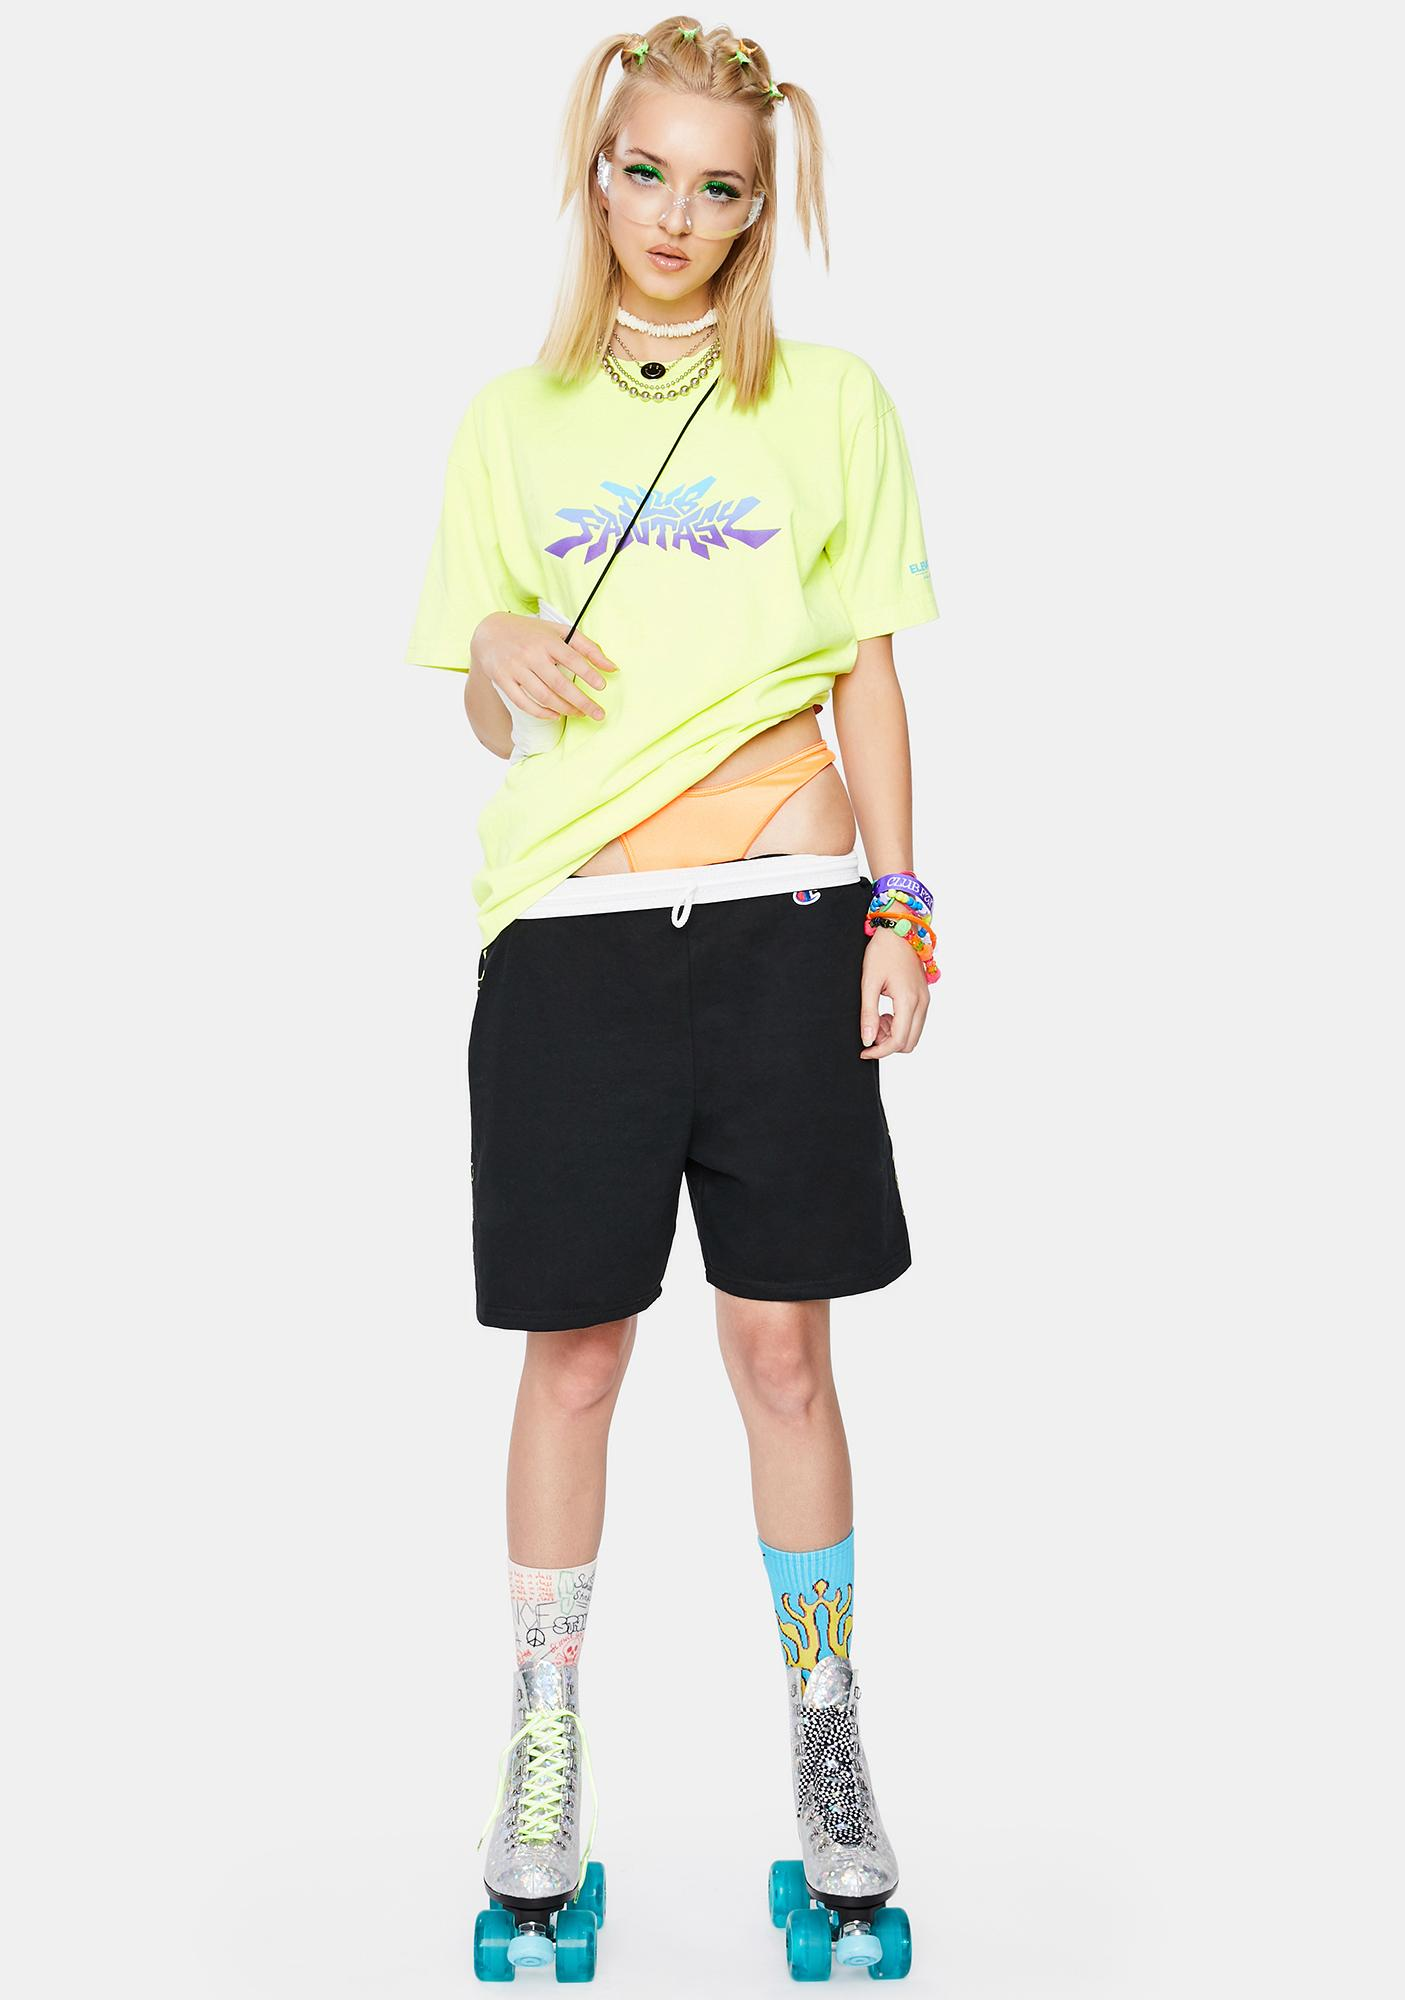 Club Fantasy Rave Candy Graphic Tee